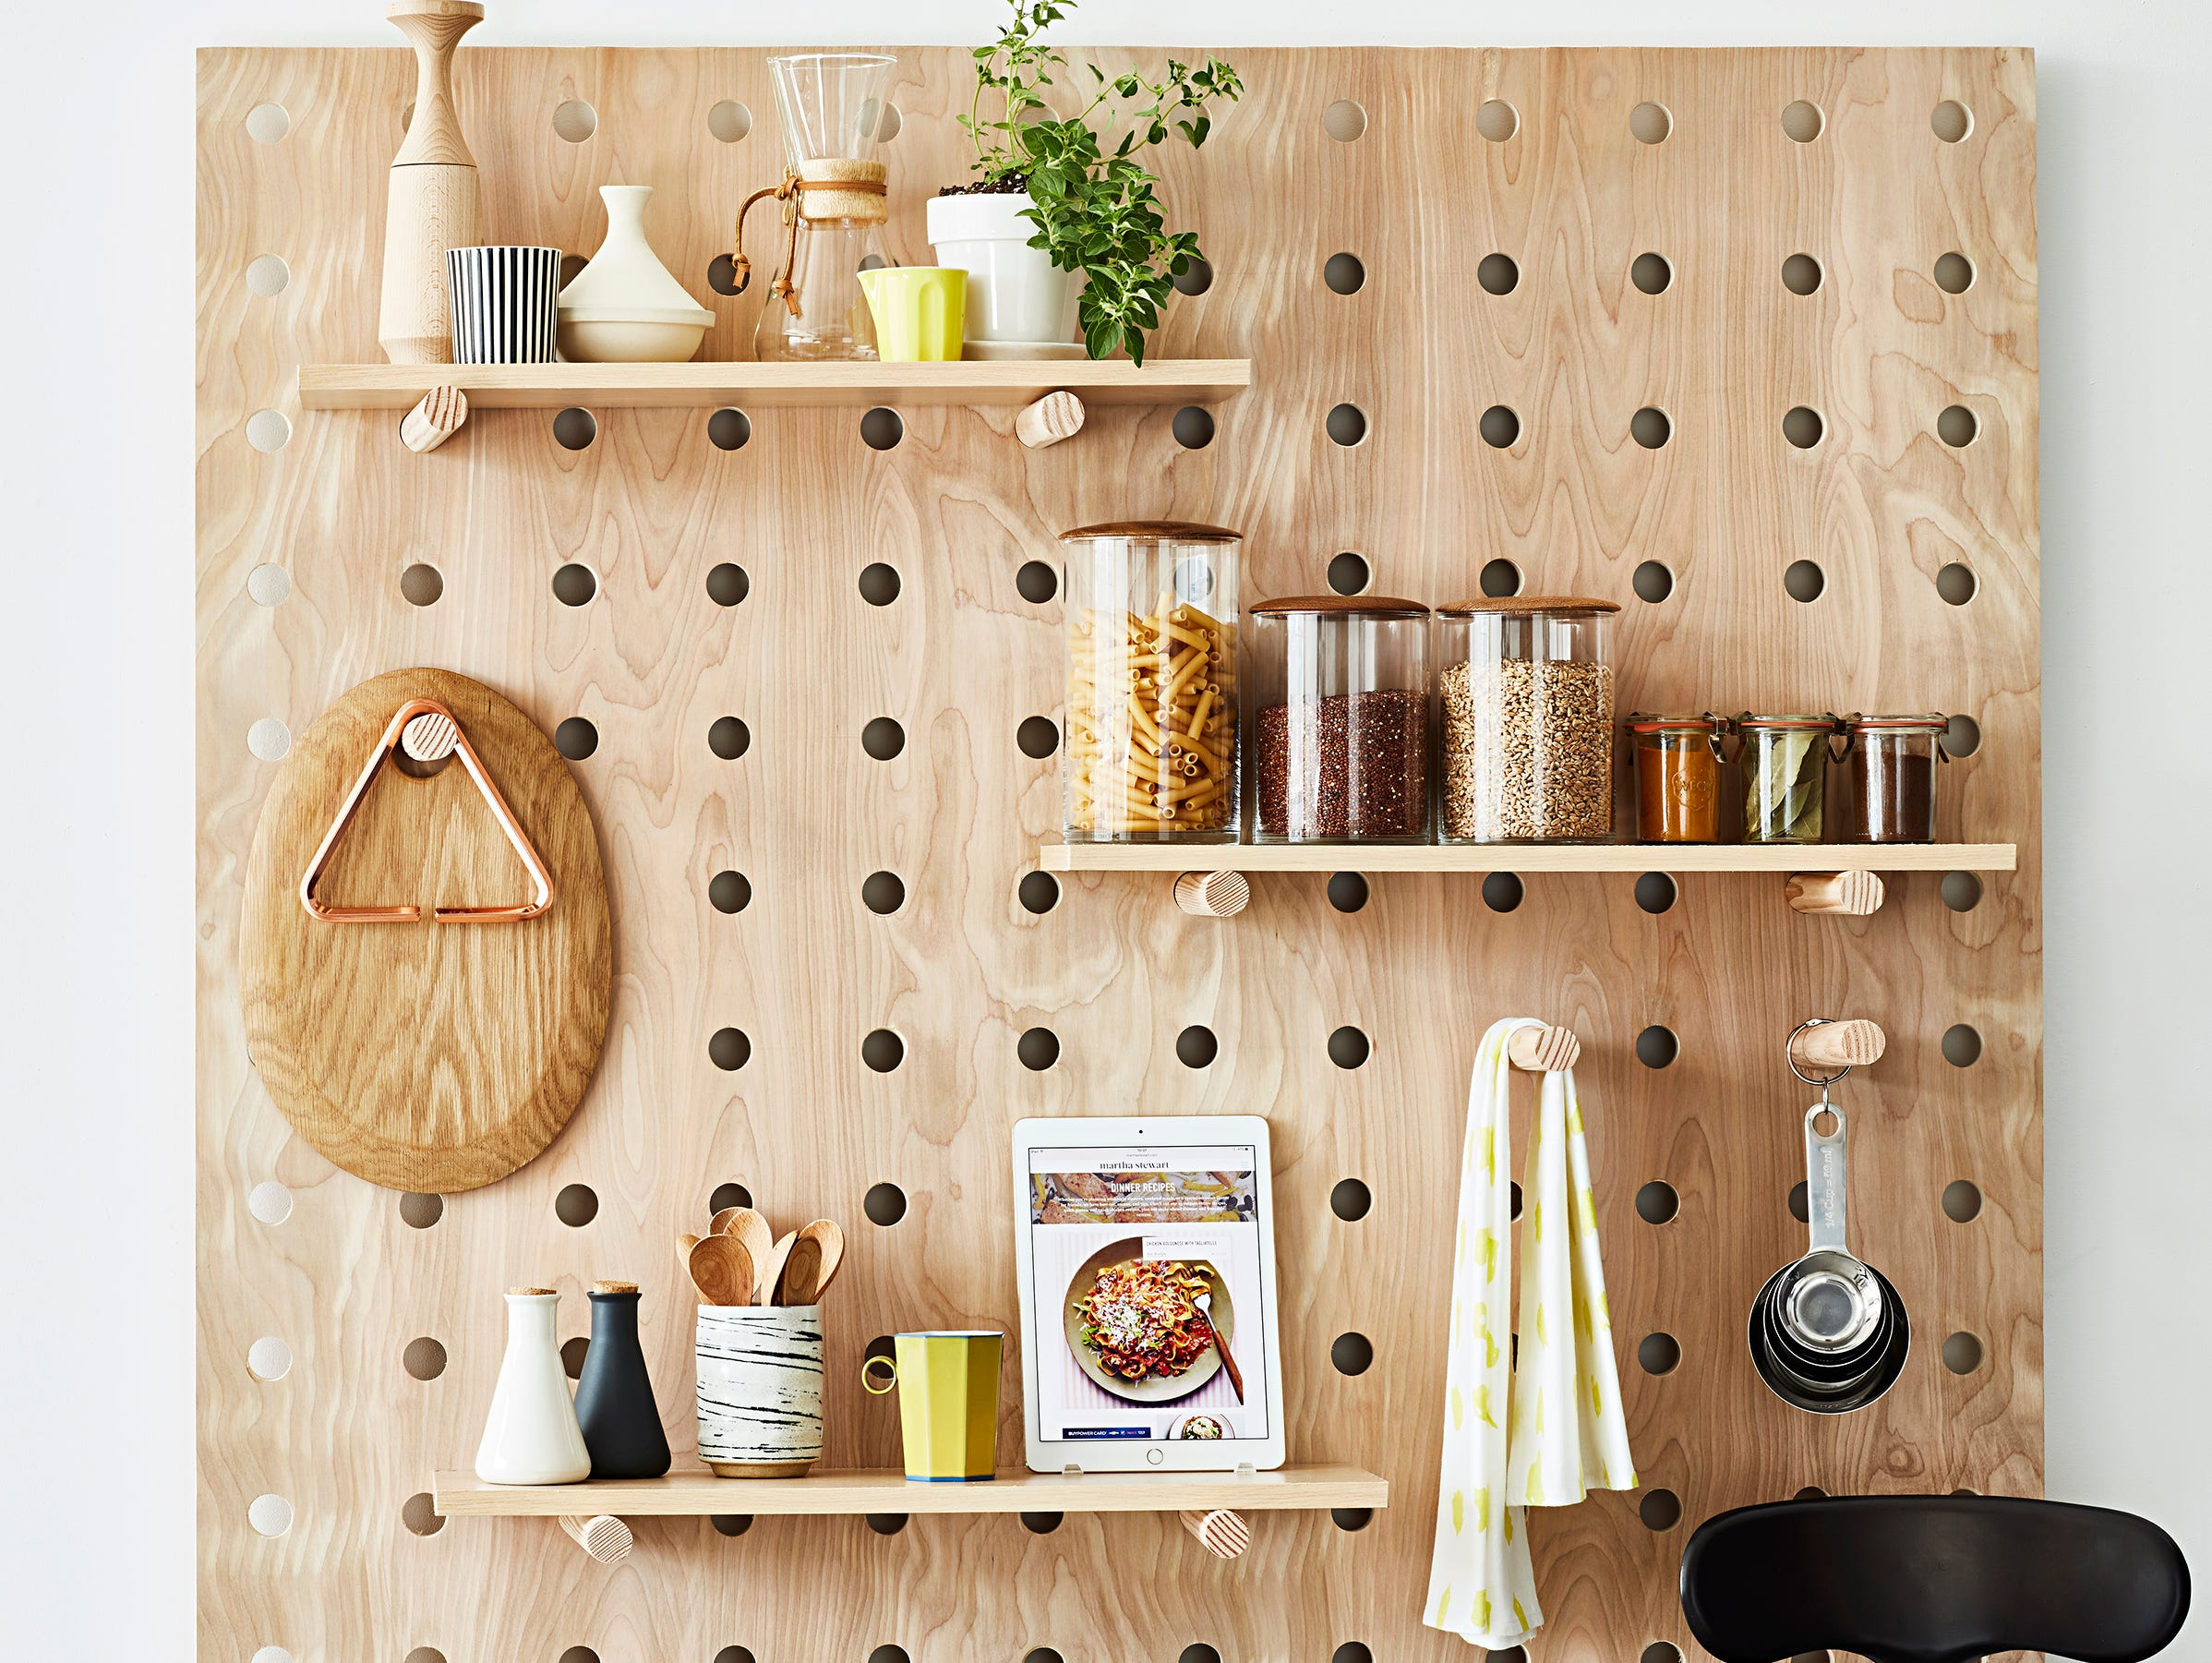 A few cleverly placed shelves, hooks and baskets can turn a small kitchen into a chef's paradise.